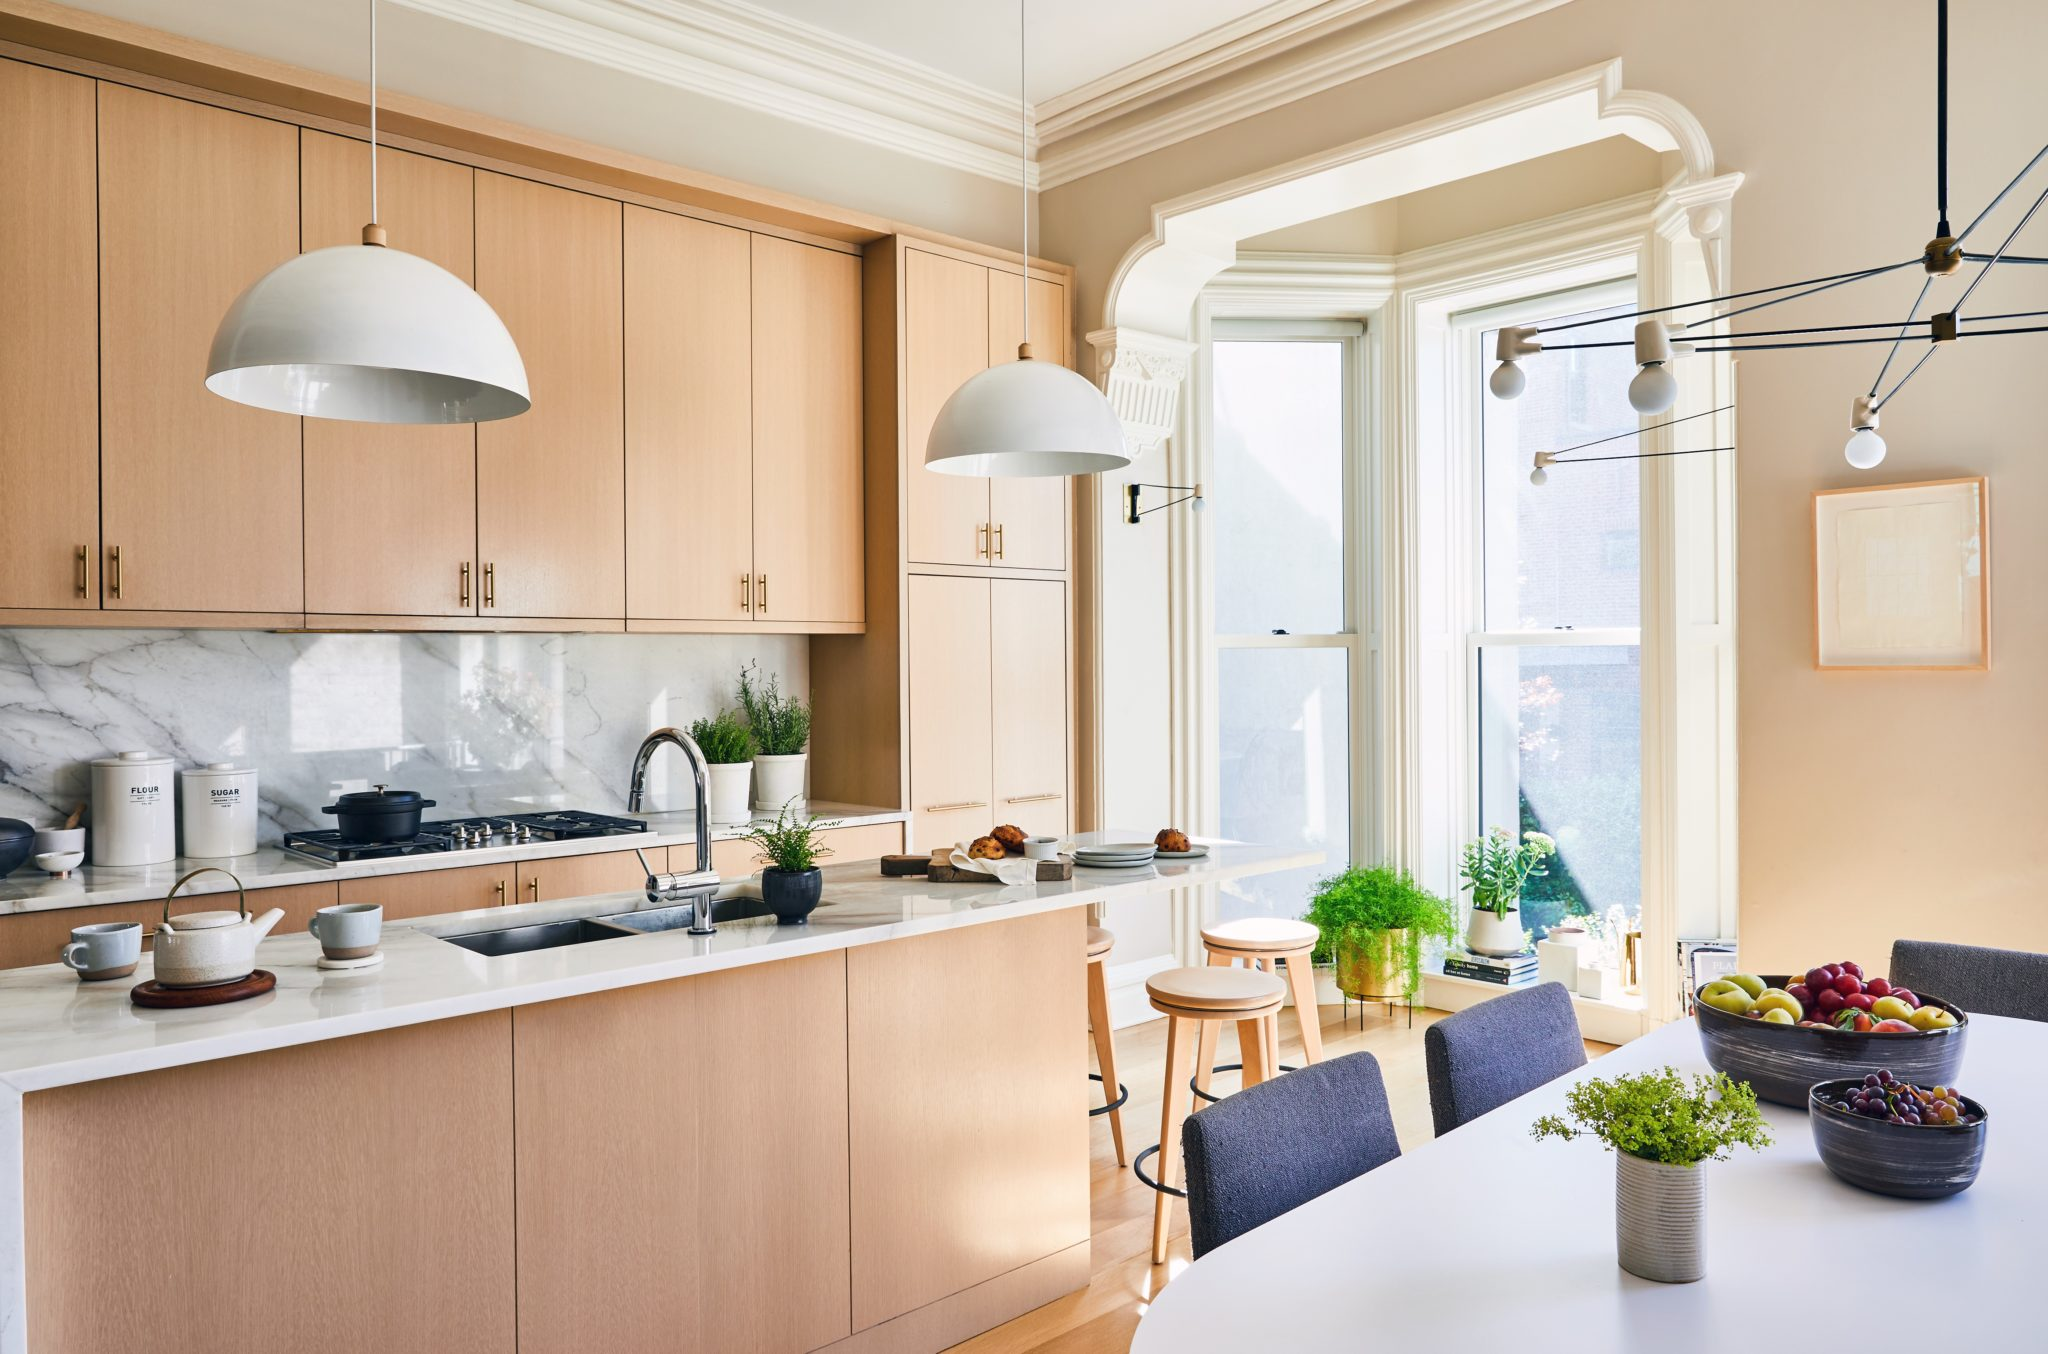 In the kitchen, the cerused rift white oak cabinetry was custom created by NR Wood Design in Brooklyn. Bright calacatta marble countertops from Langley Stone and Marble further lighten the look of the wood cabinetry. The sleek island pendant lights are from Allied Maker, and the bleached walnutstools are from Dennis Miller.